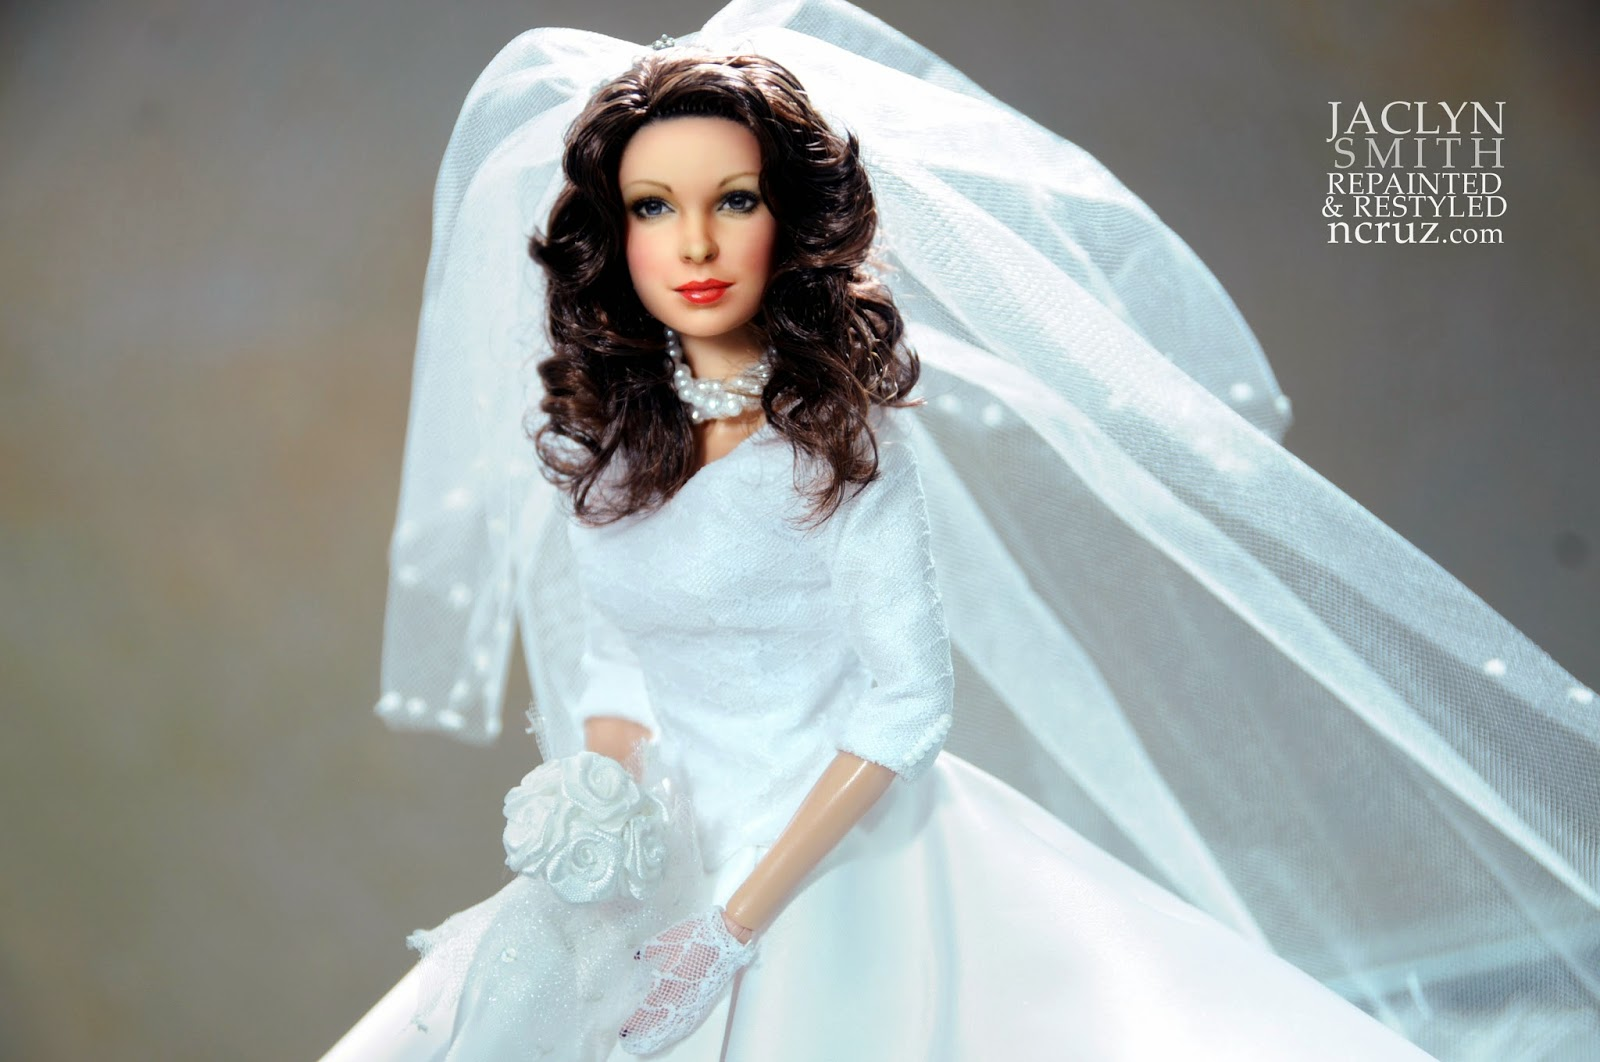 Jaclyn Smith repainted and restyled 12 inch Barbie